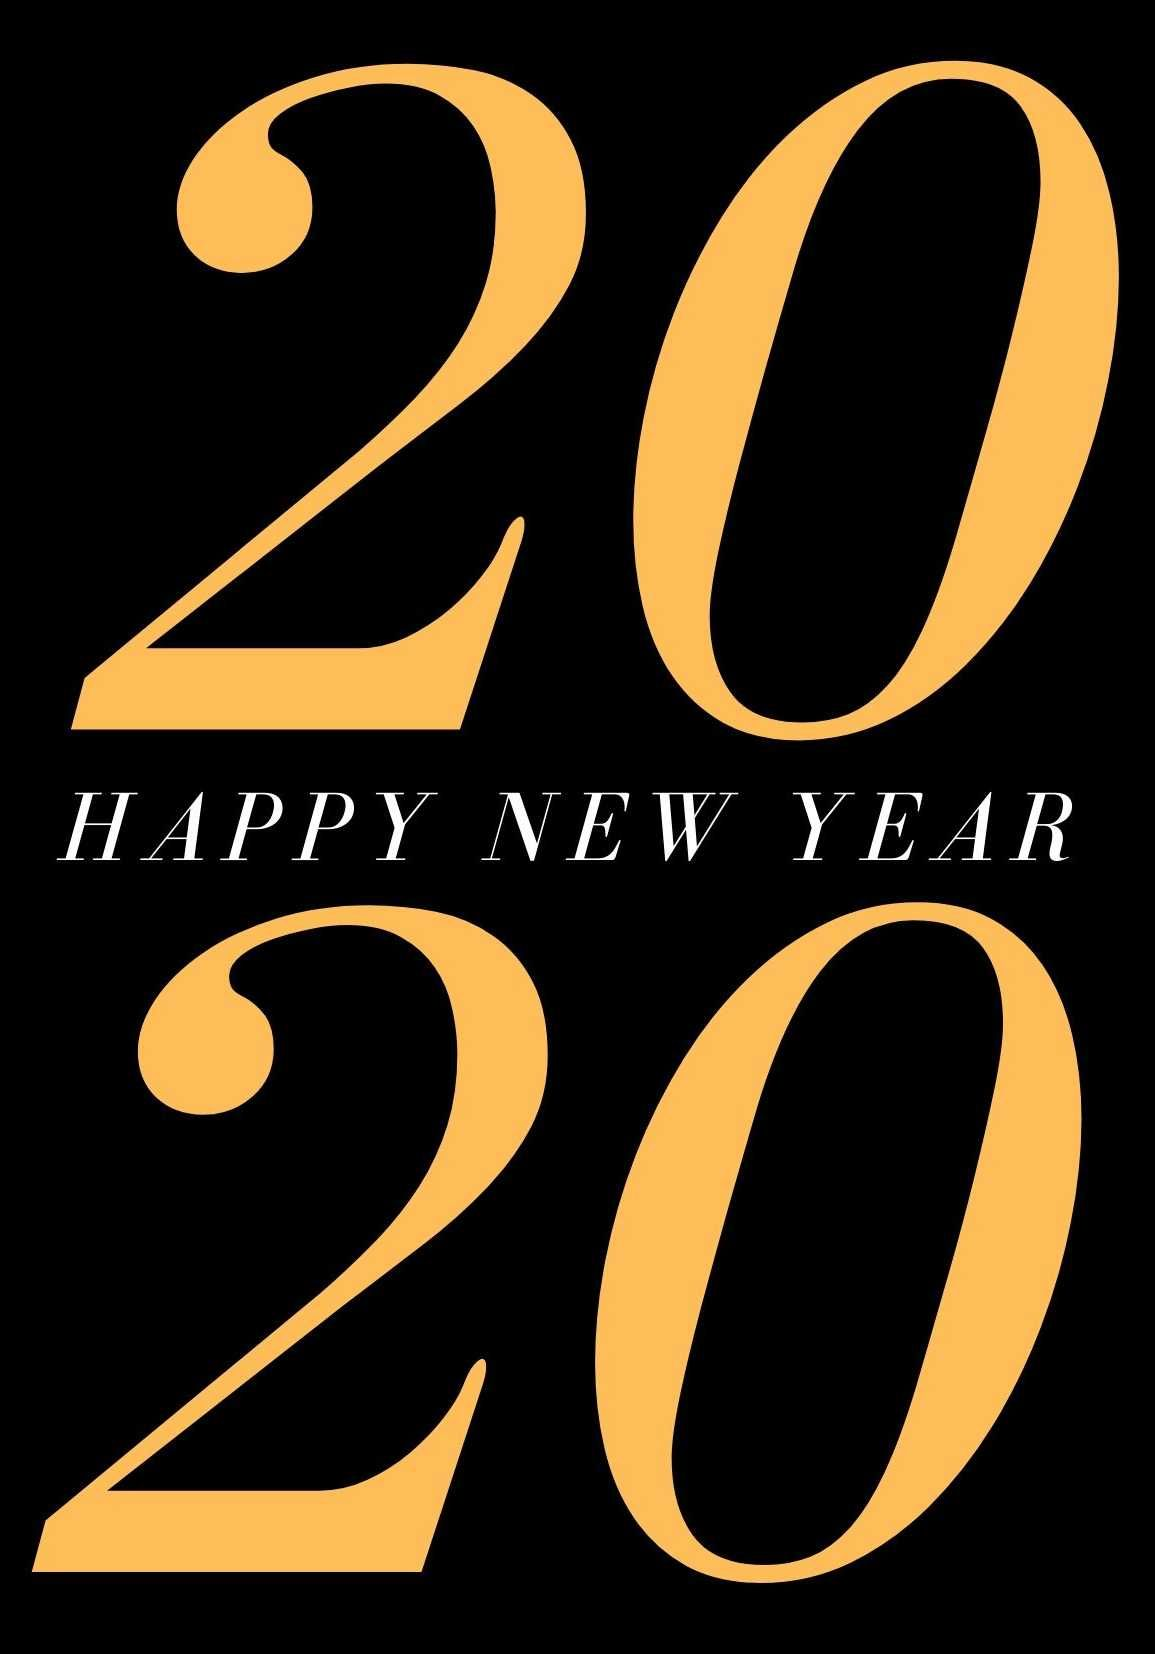 new years eve images 2020 HD free for whatsapp, Instagram